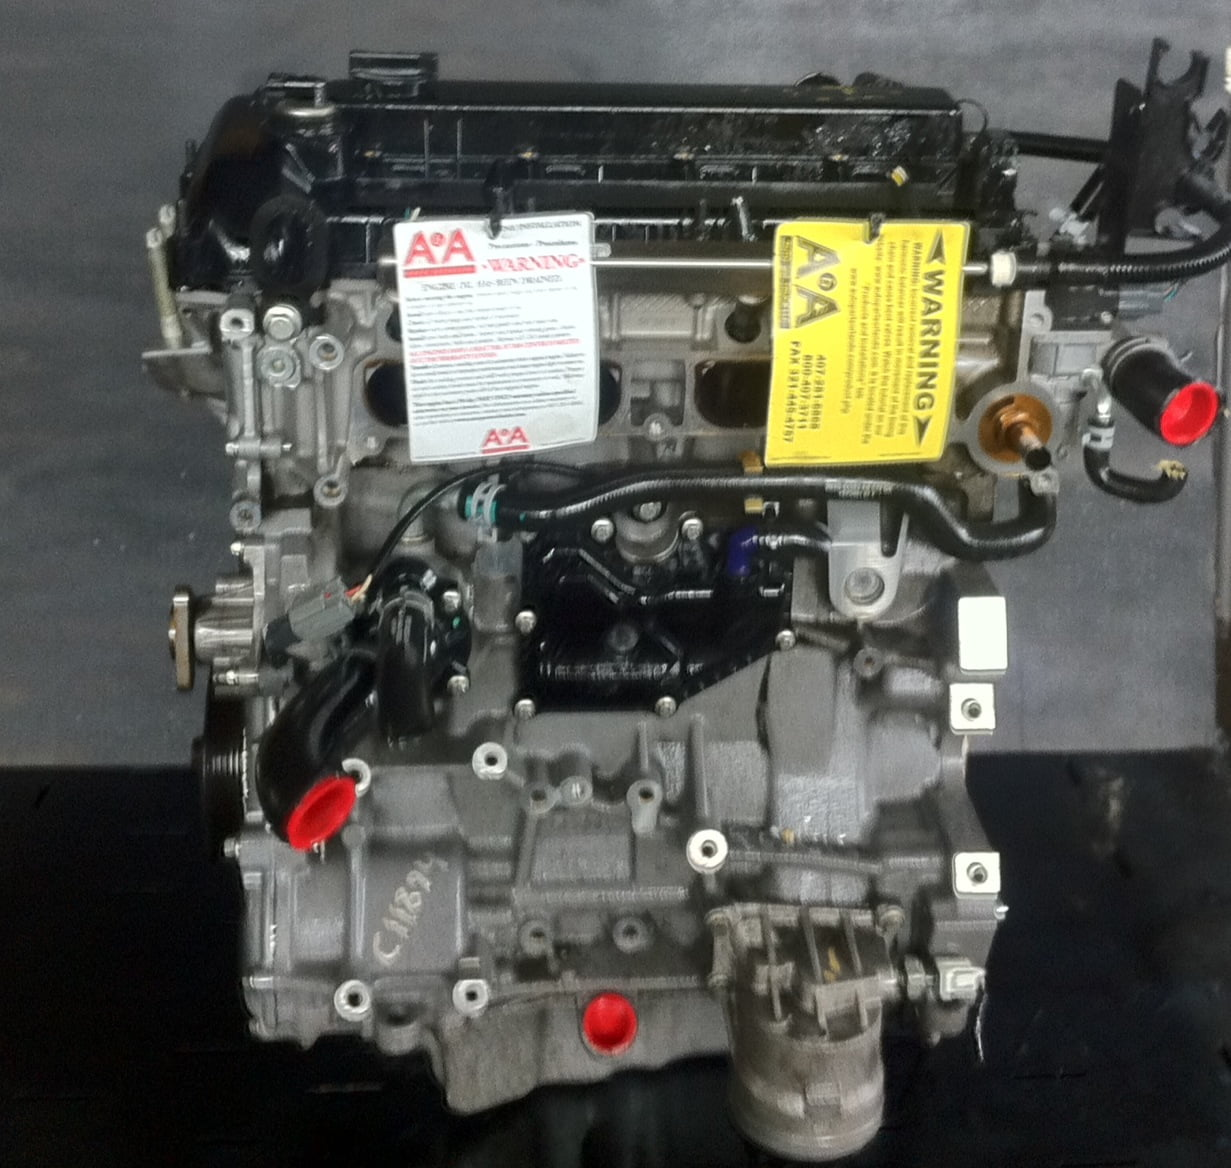 2007 mazda 5 engine diagram schematics wiring diagrams u2022 rh parntesis  co Mazda 3.0 V6 Engine Diagram Mazda 3.0 V6 Engine Diagram